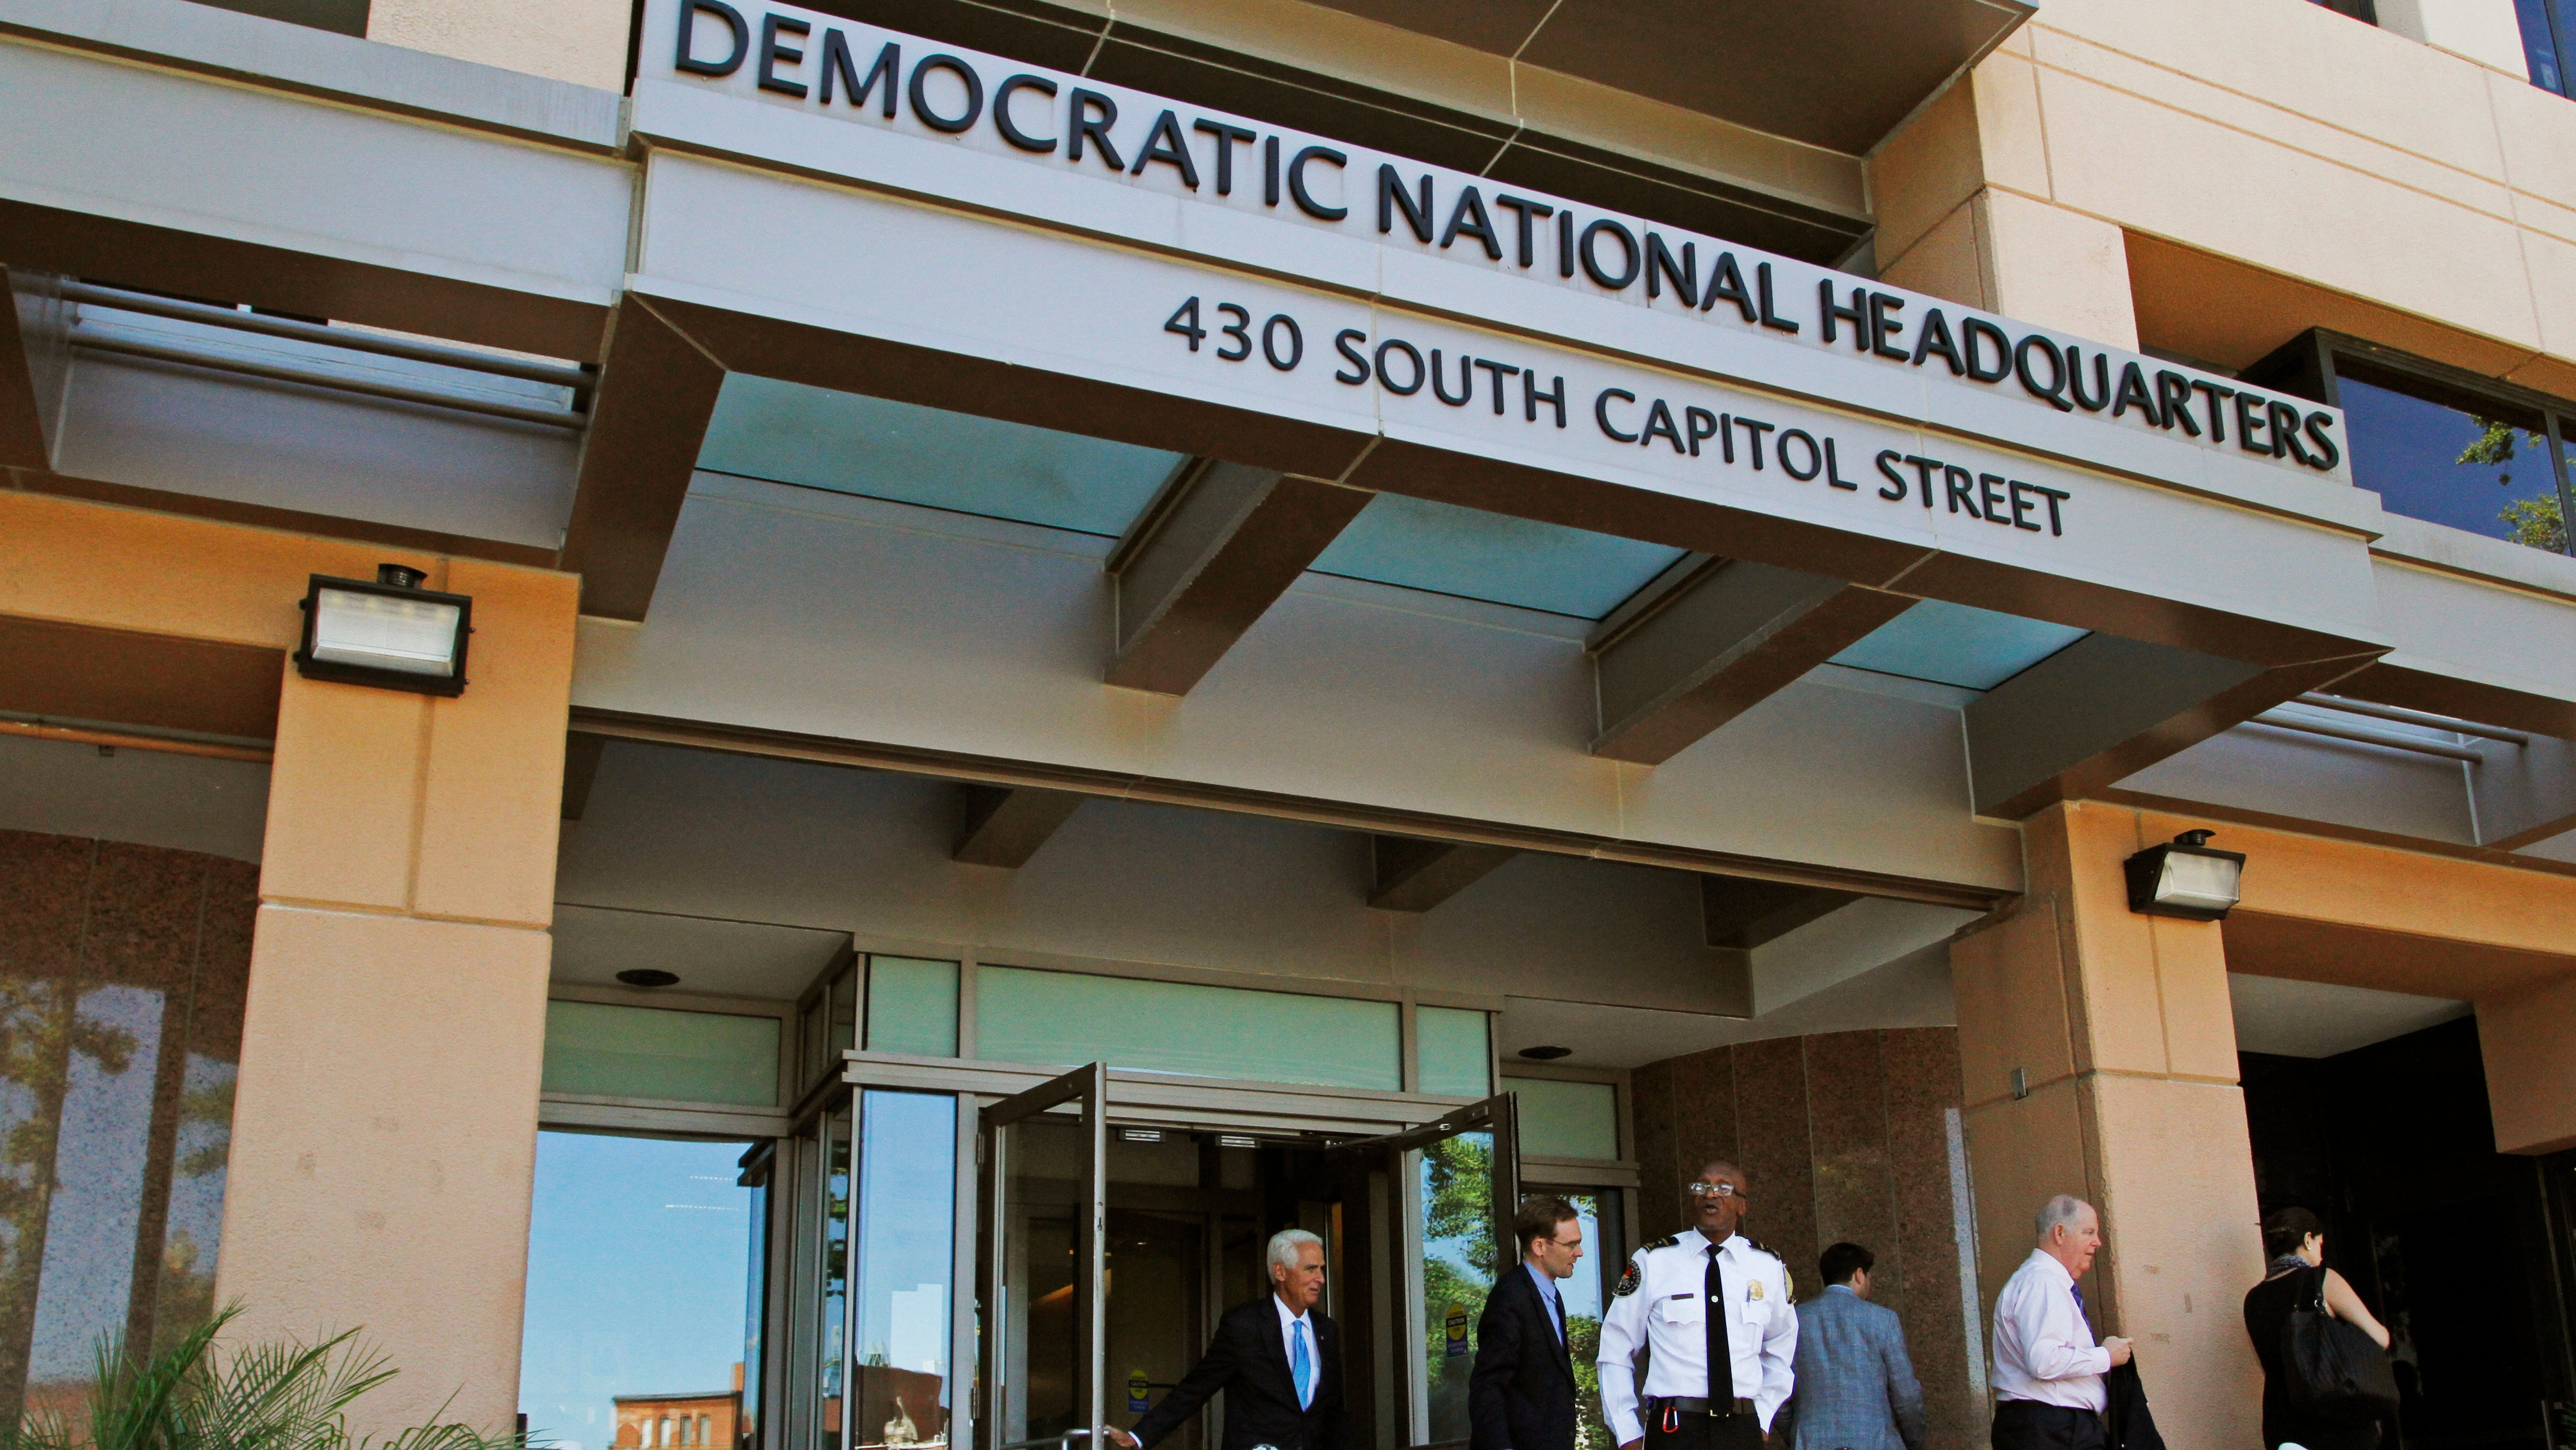 'Hacking Attempt' On Democratic National Committee Discovered